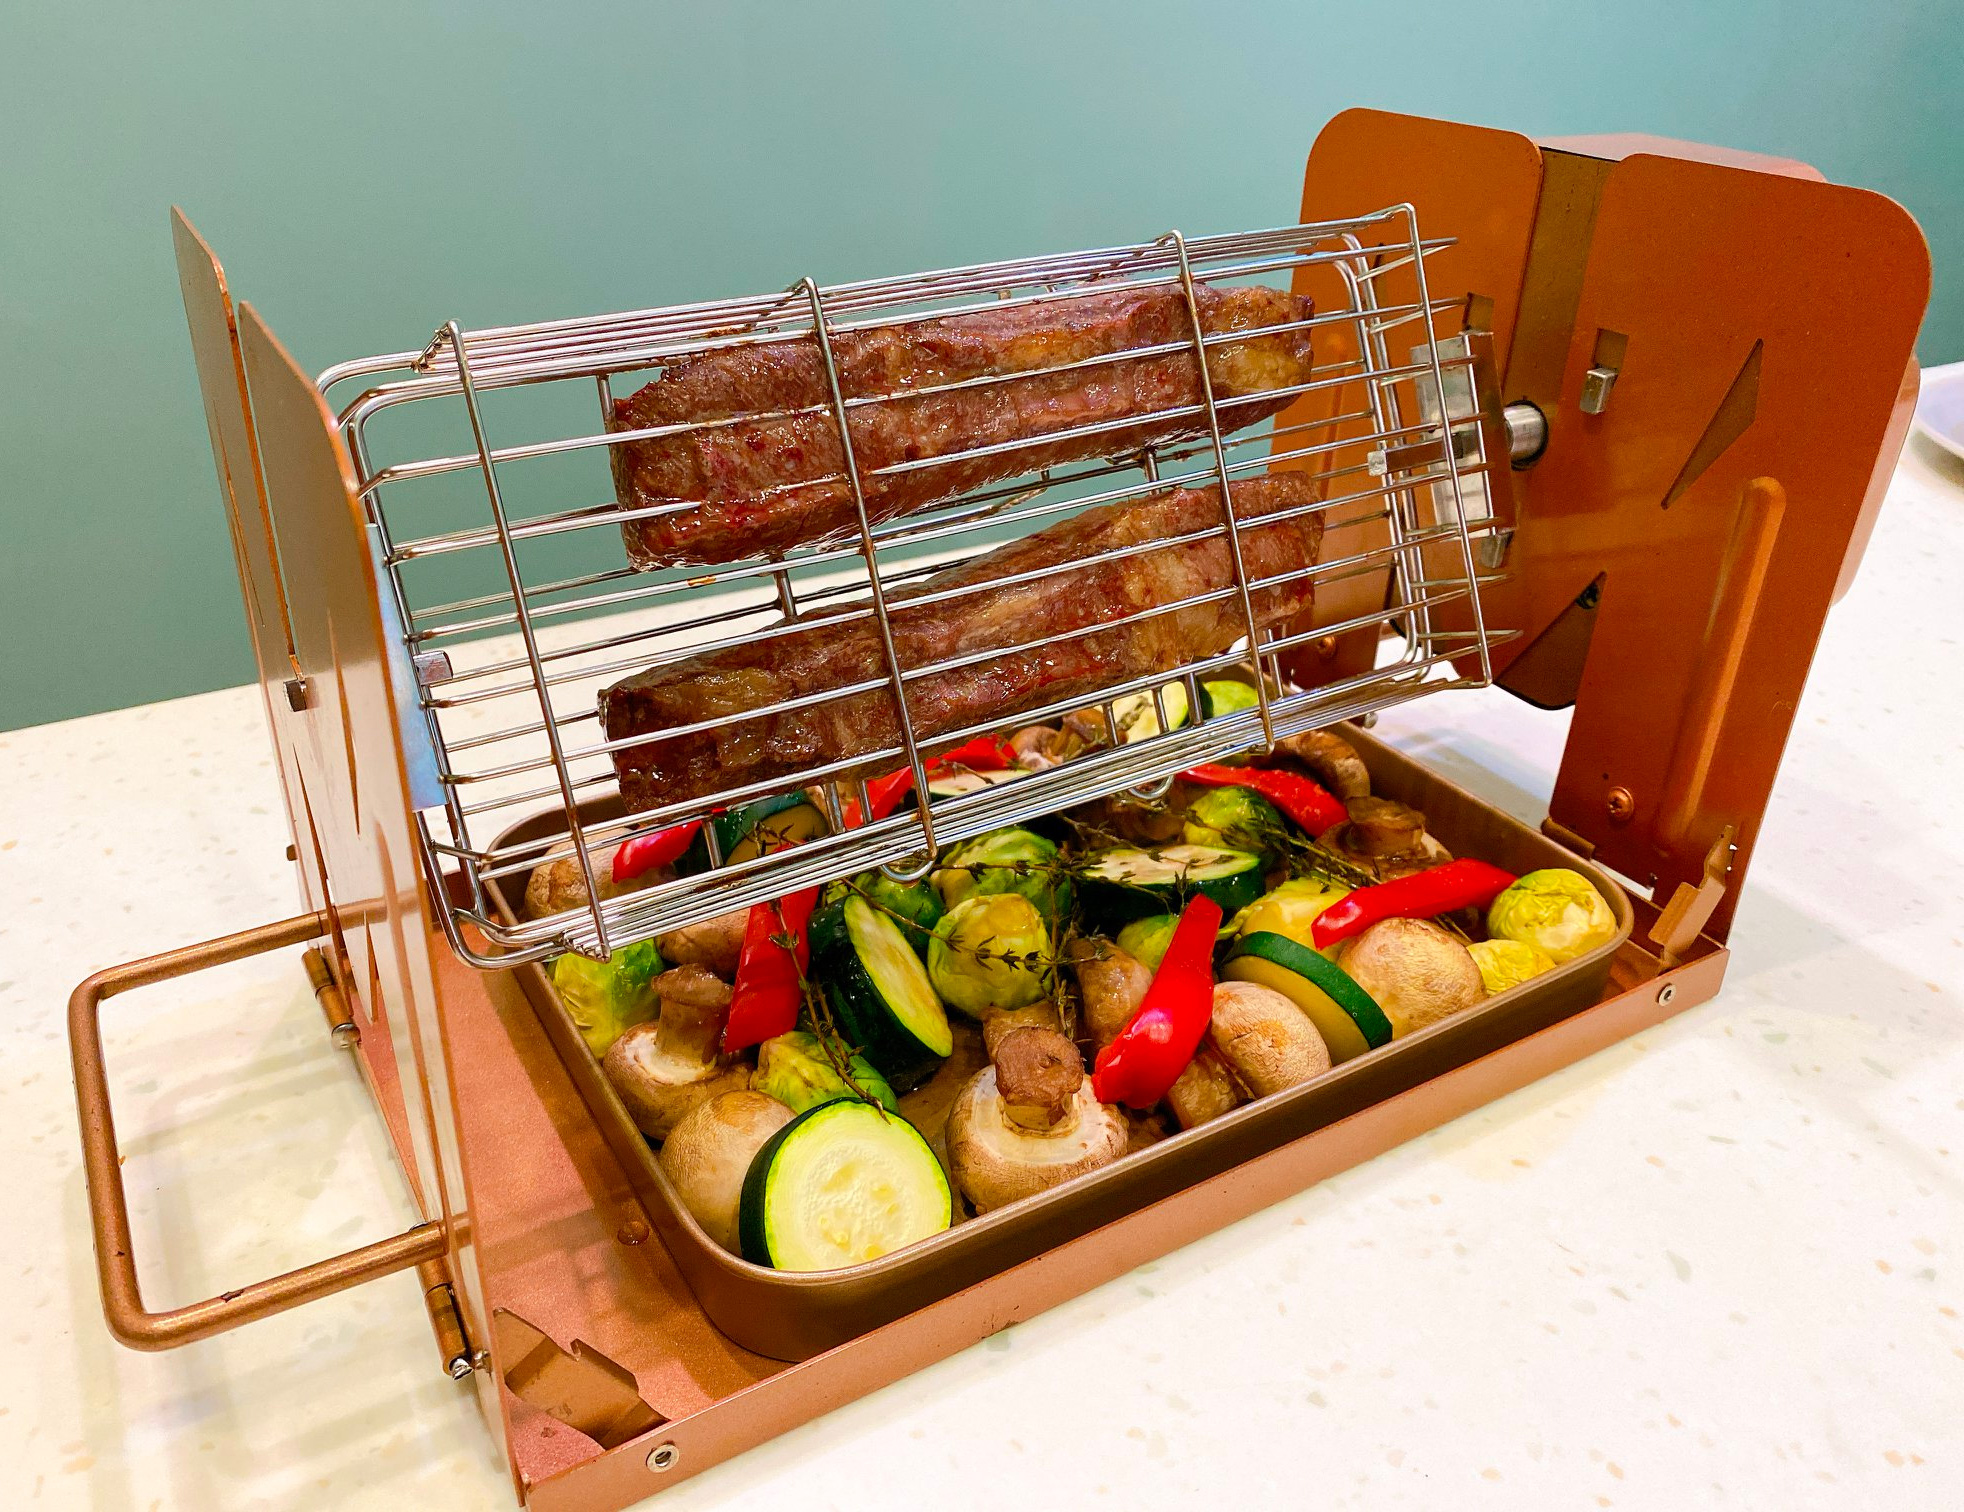 The Roto-Q 360 is the World's First Non-Electric Rotisserie at werd.com